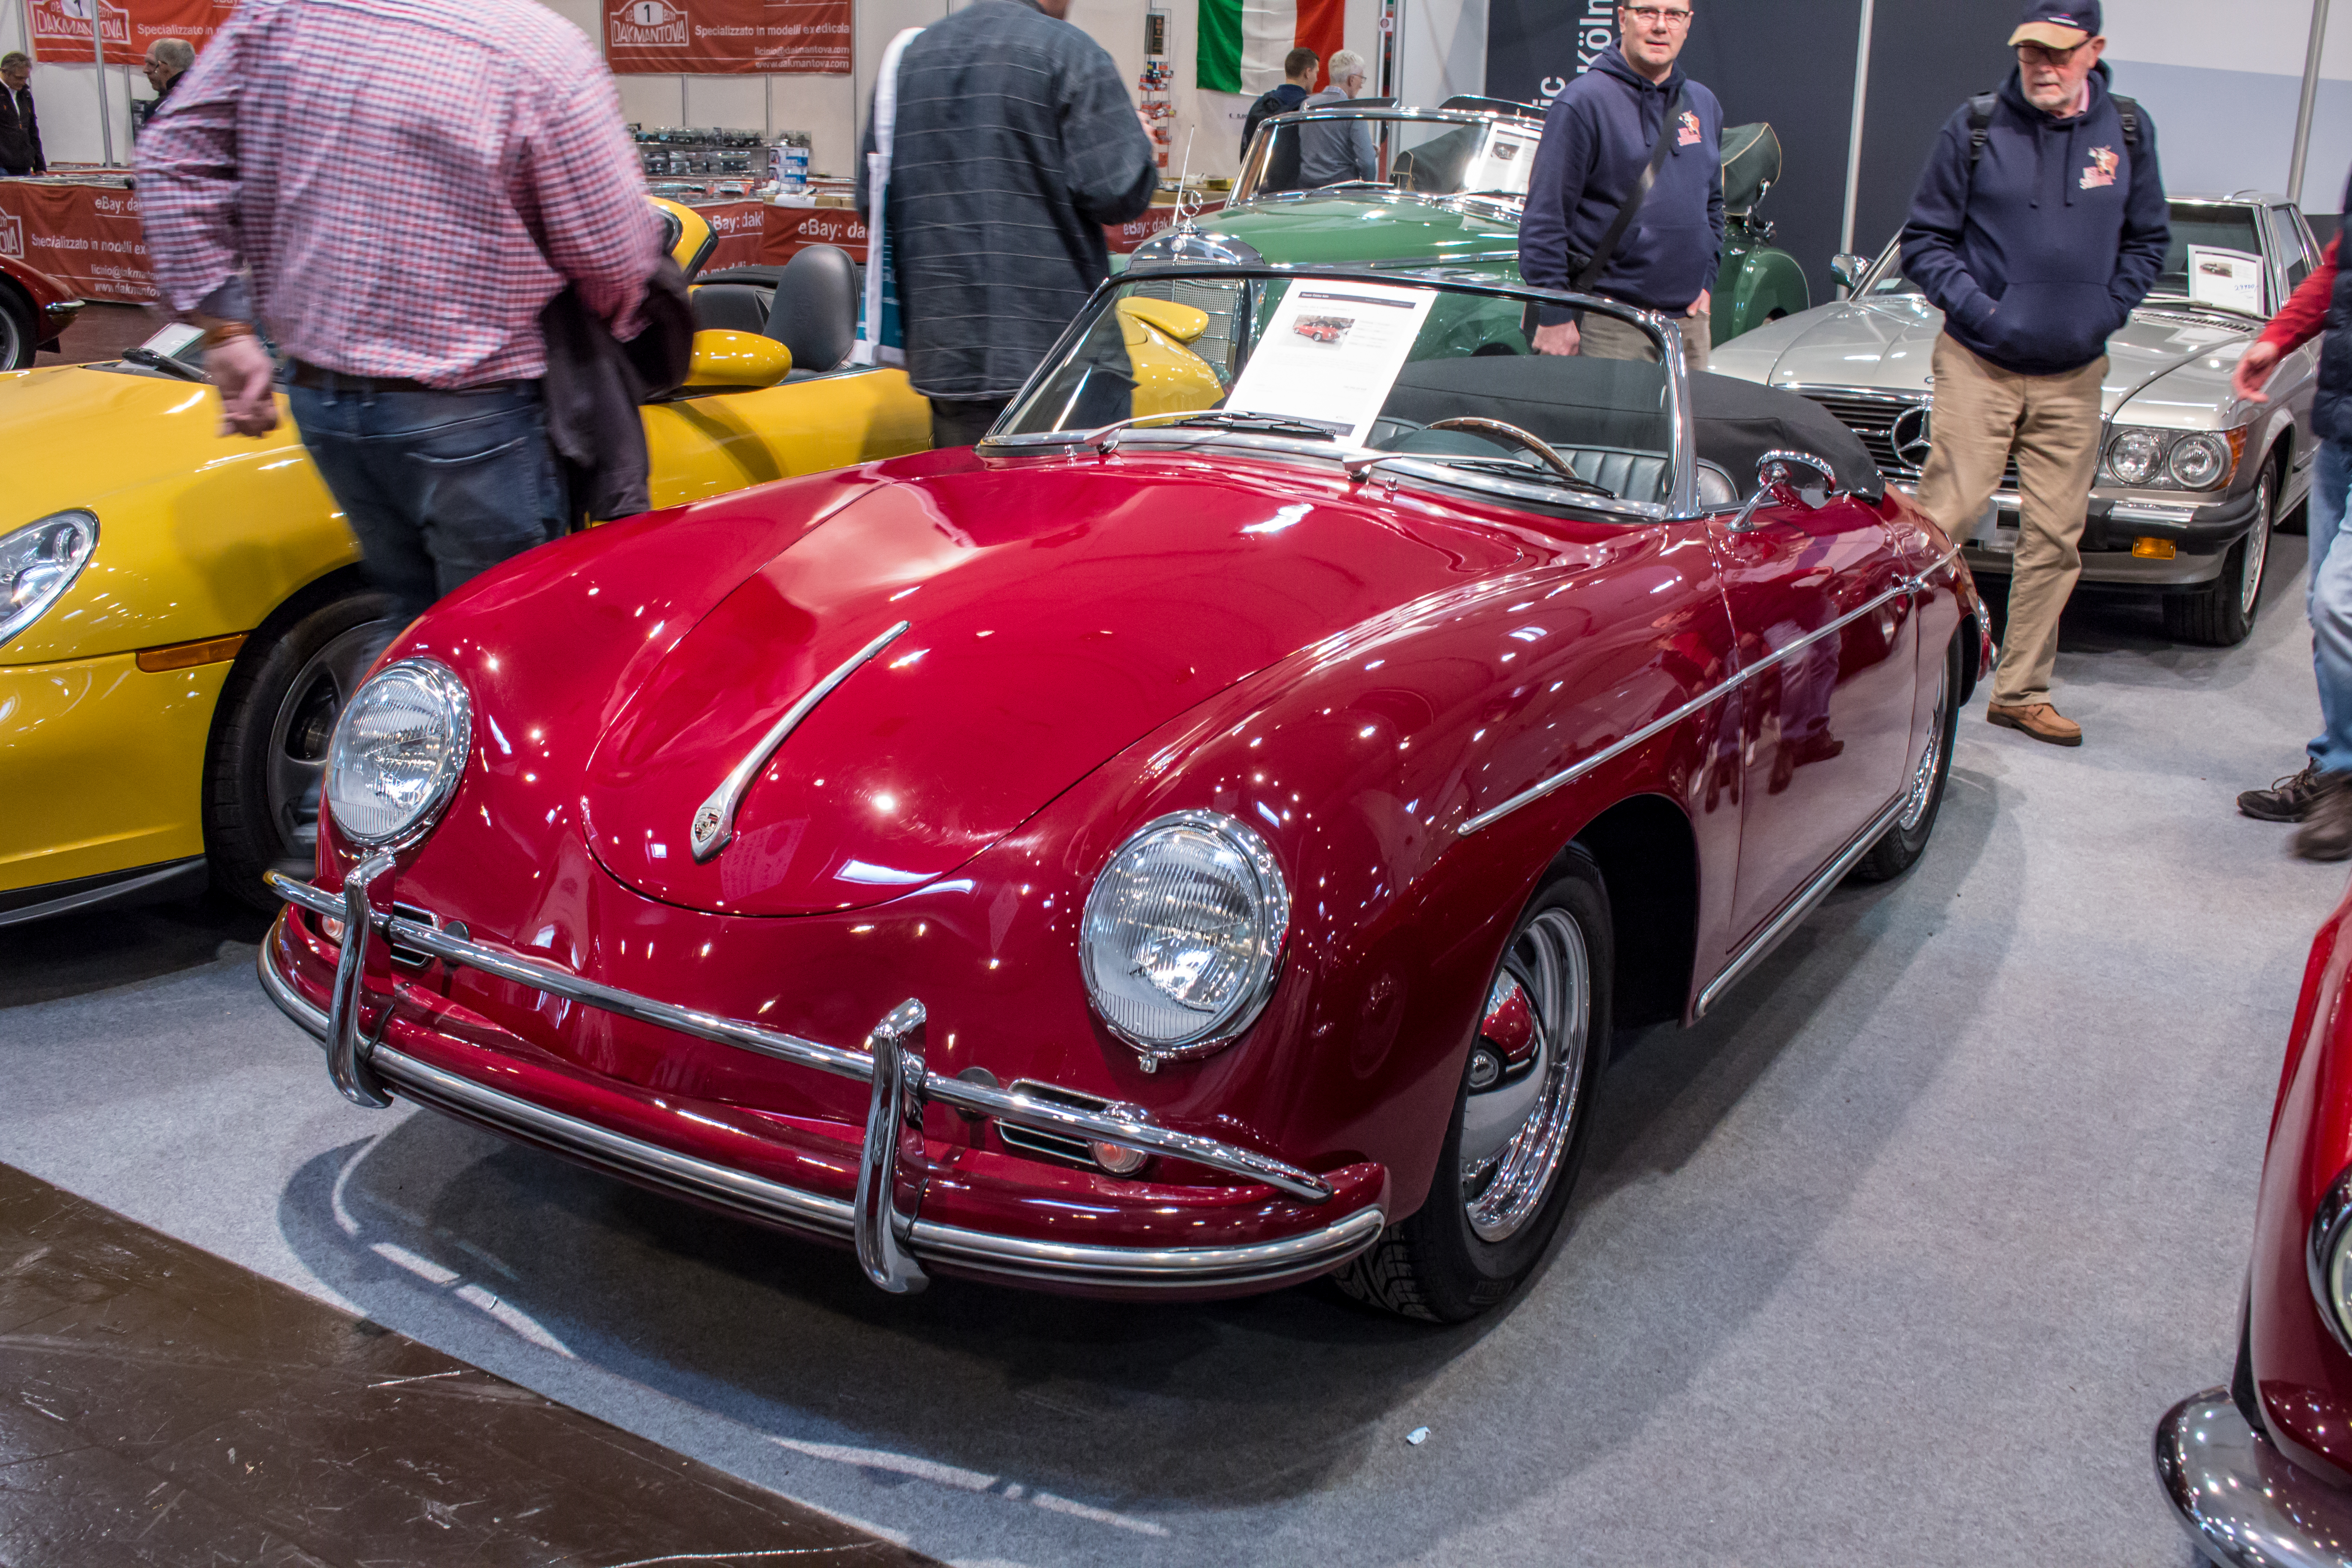 Ebay Essen File Techno Classica 2018 Essen Img 9099 Jpg Wikimedia Commons